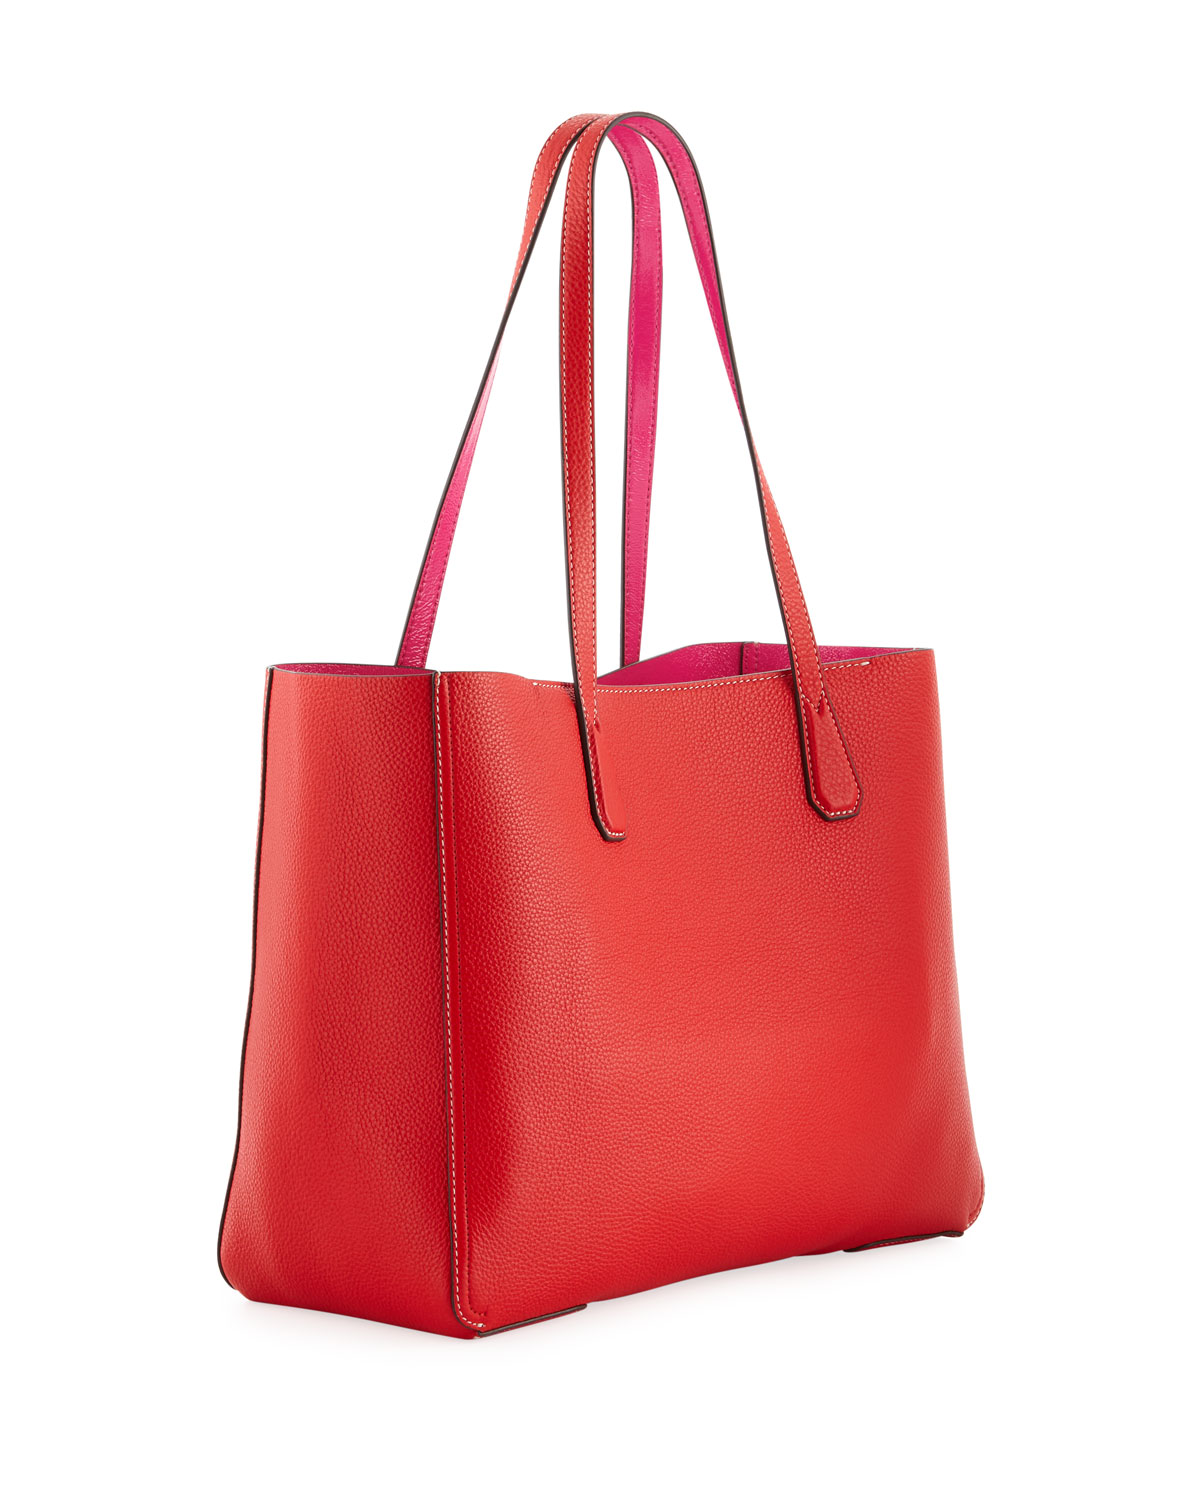 2381504cac Tory Burch Phoebe Leather Tote Bag   Neiman Marcus